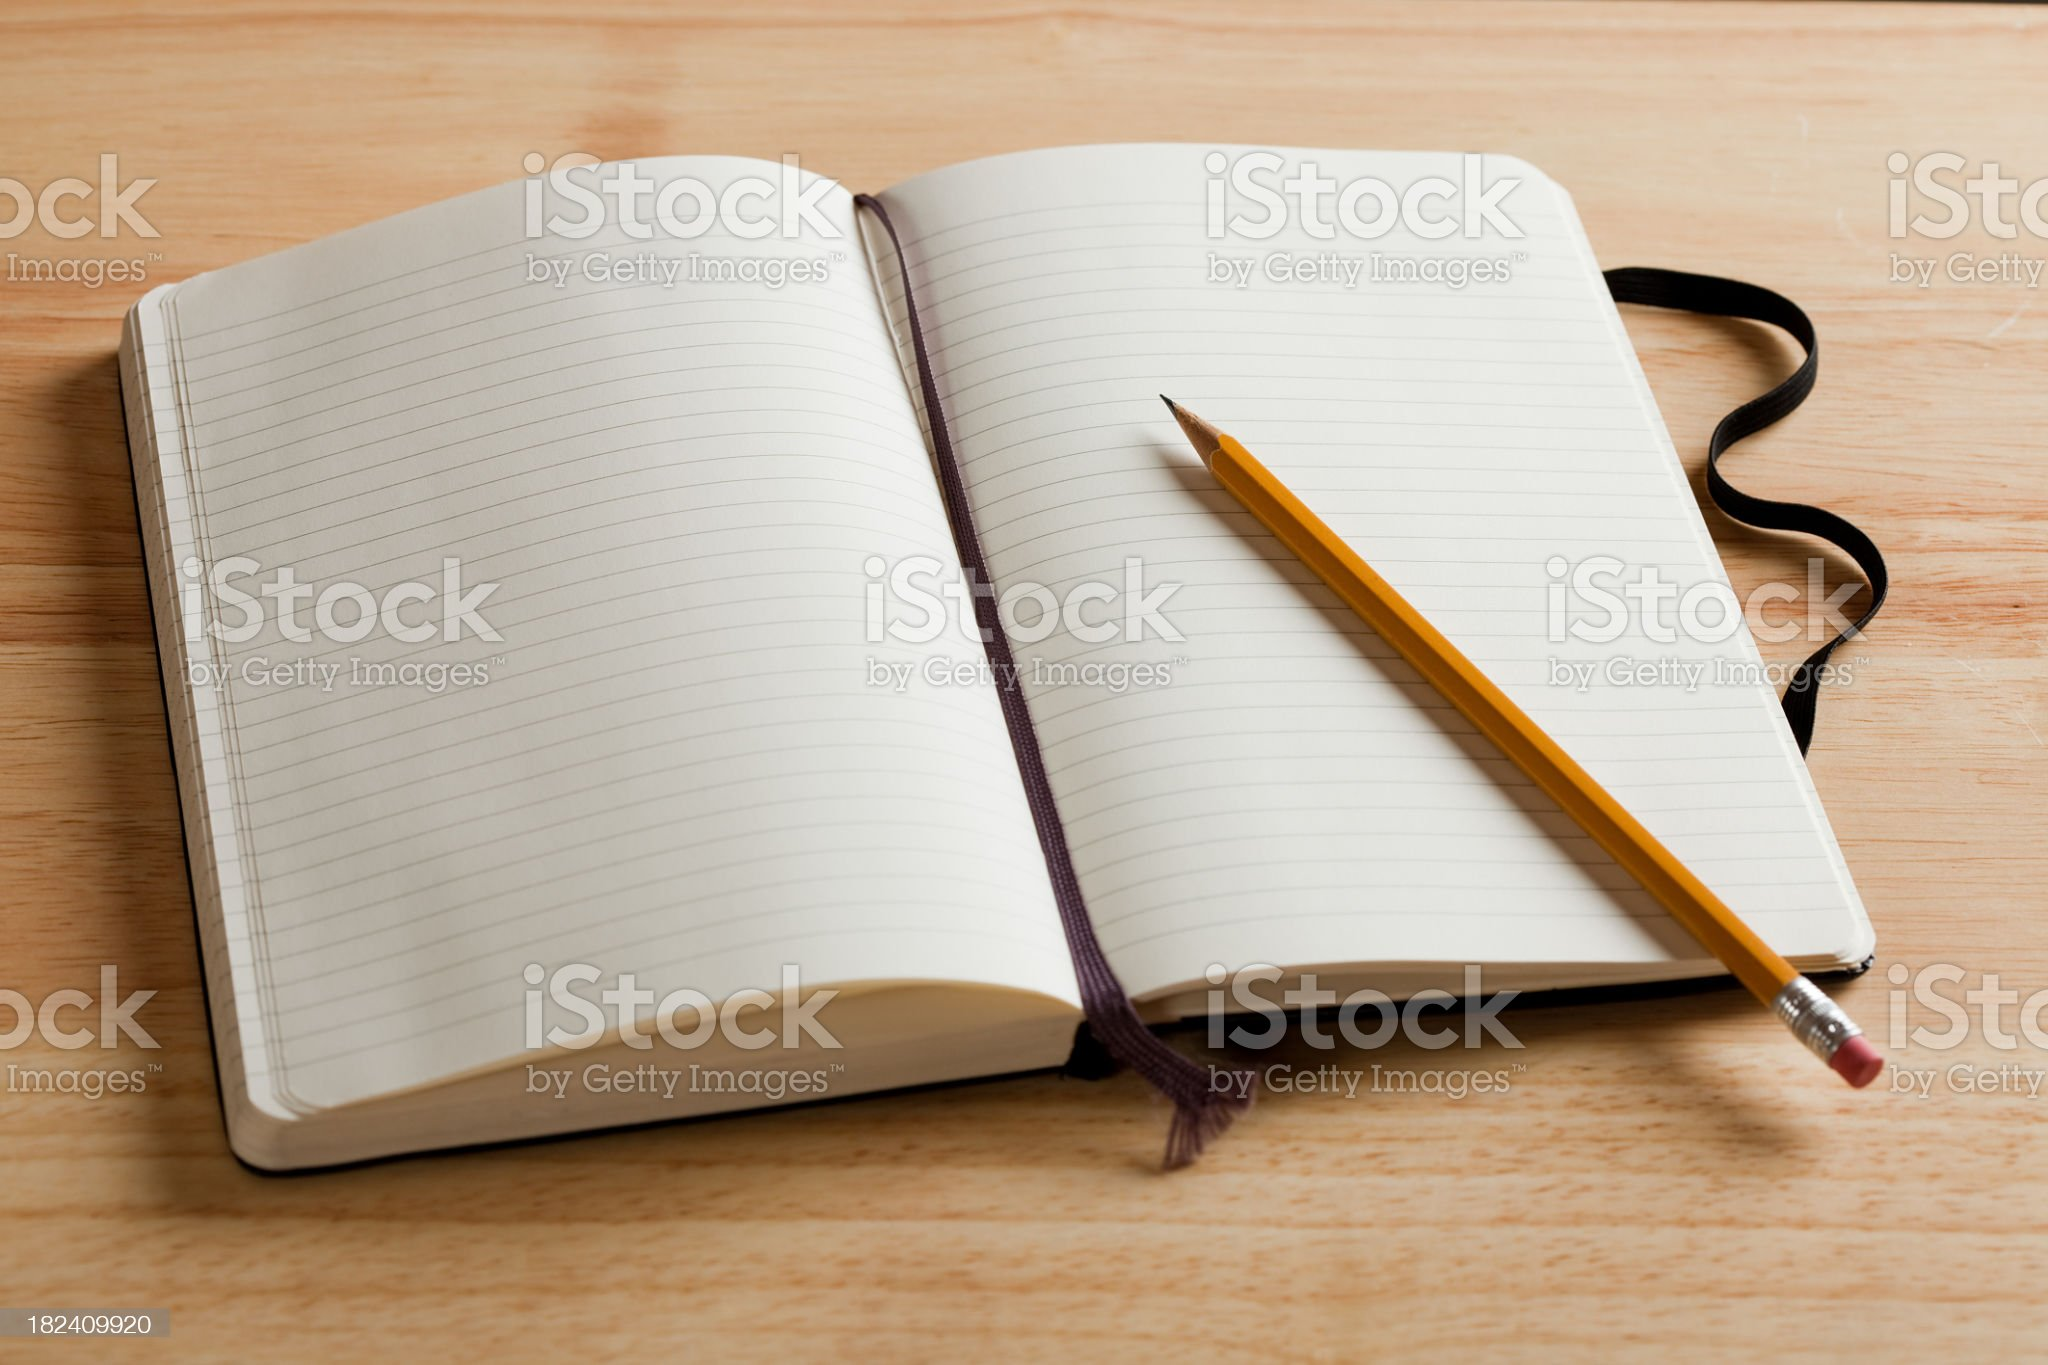 An empty journal open on a desk with a pencil royalty-free stock photo